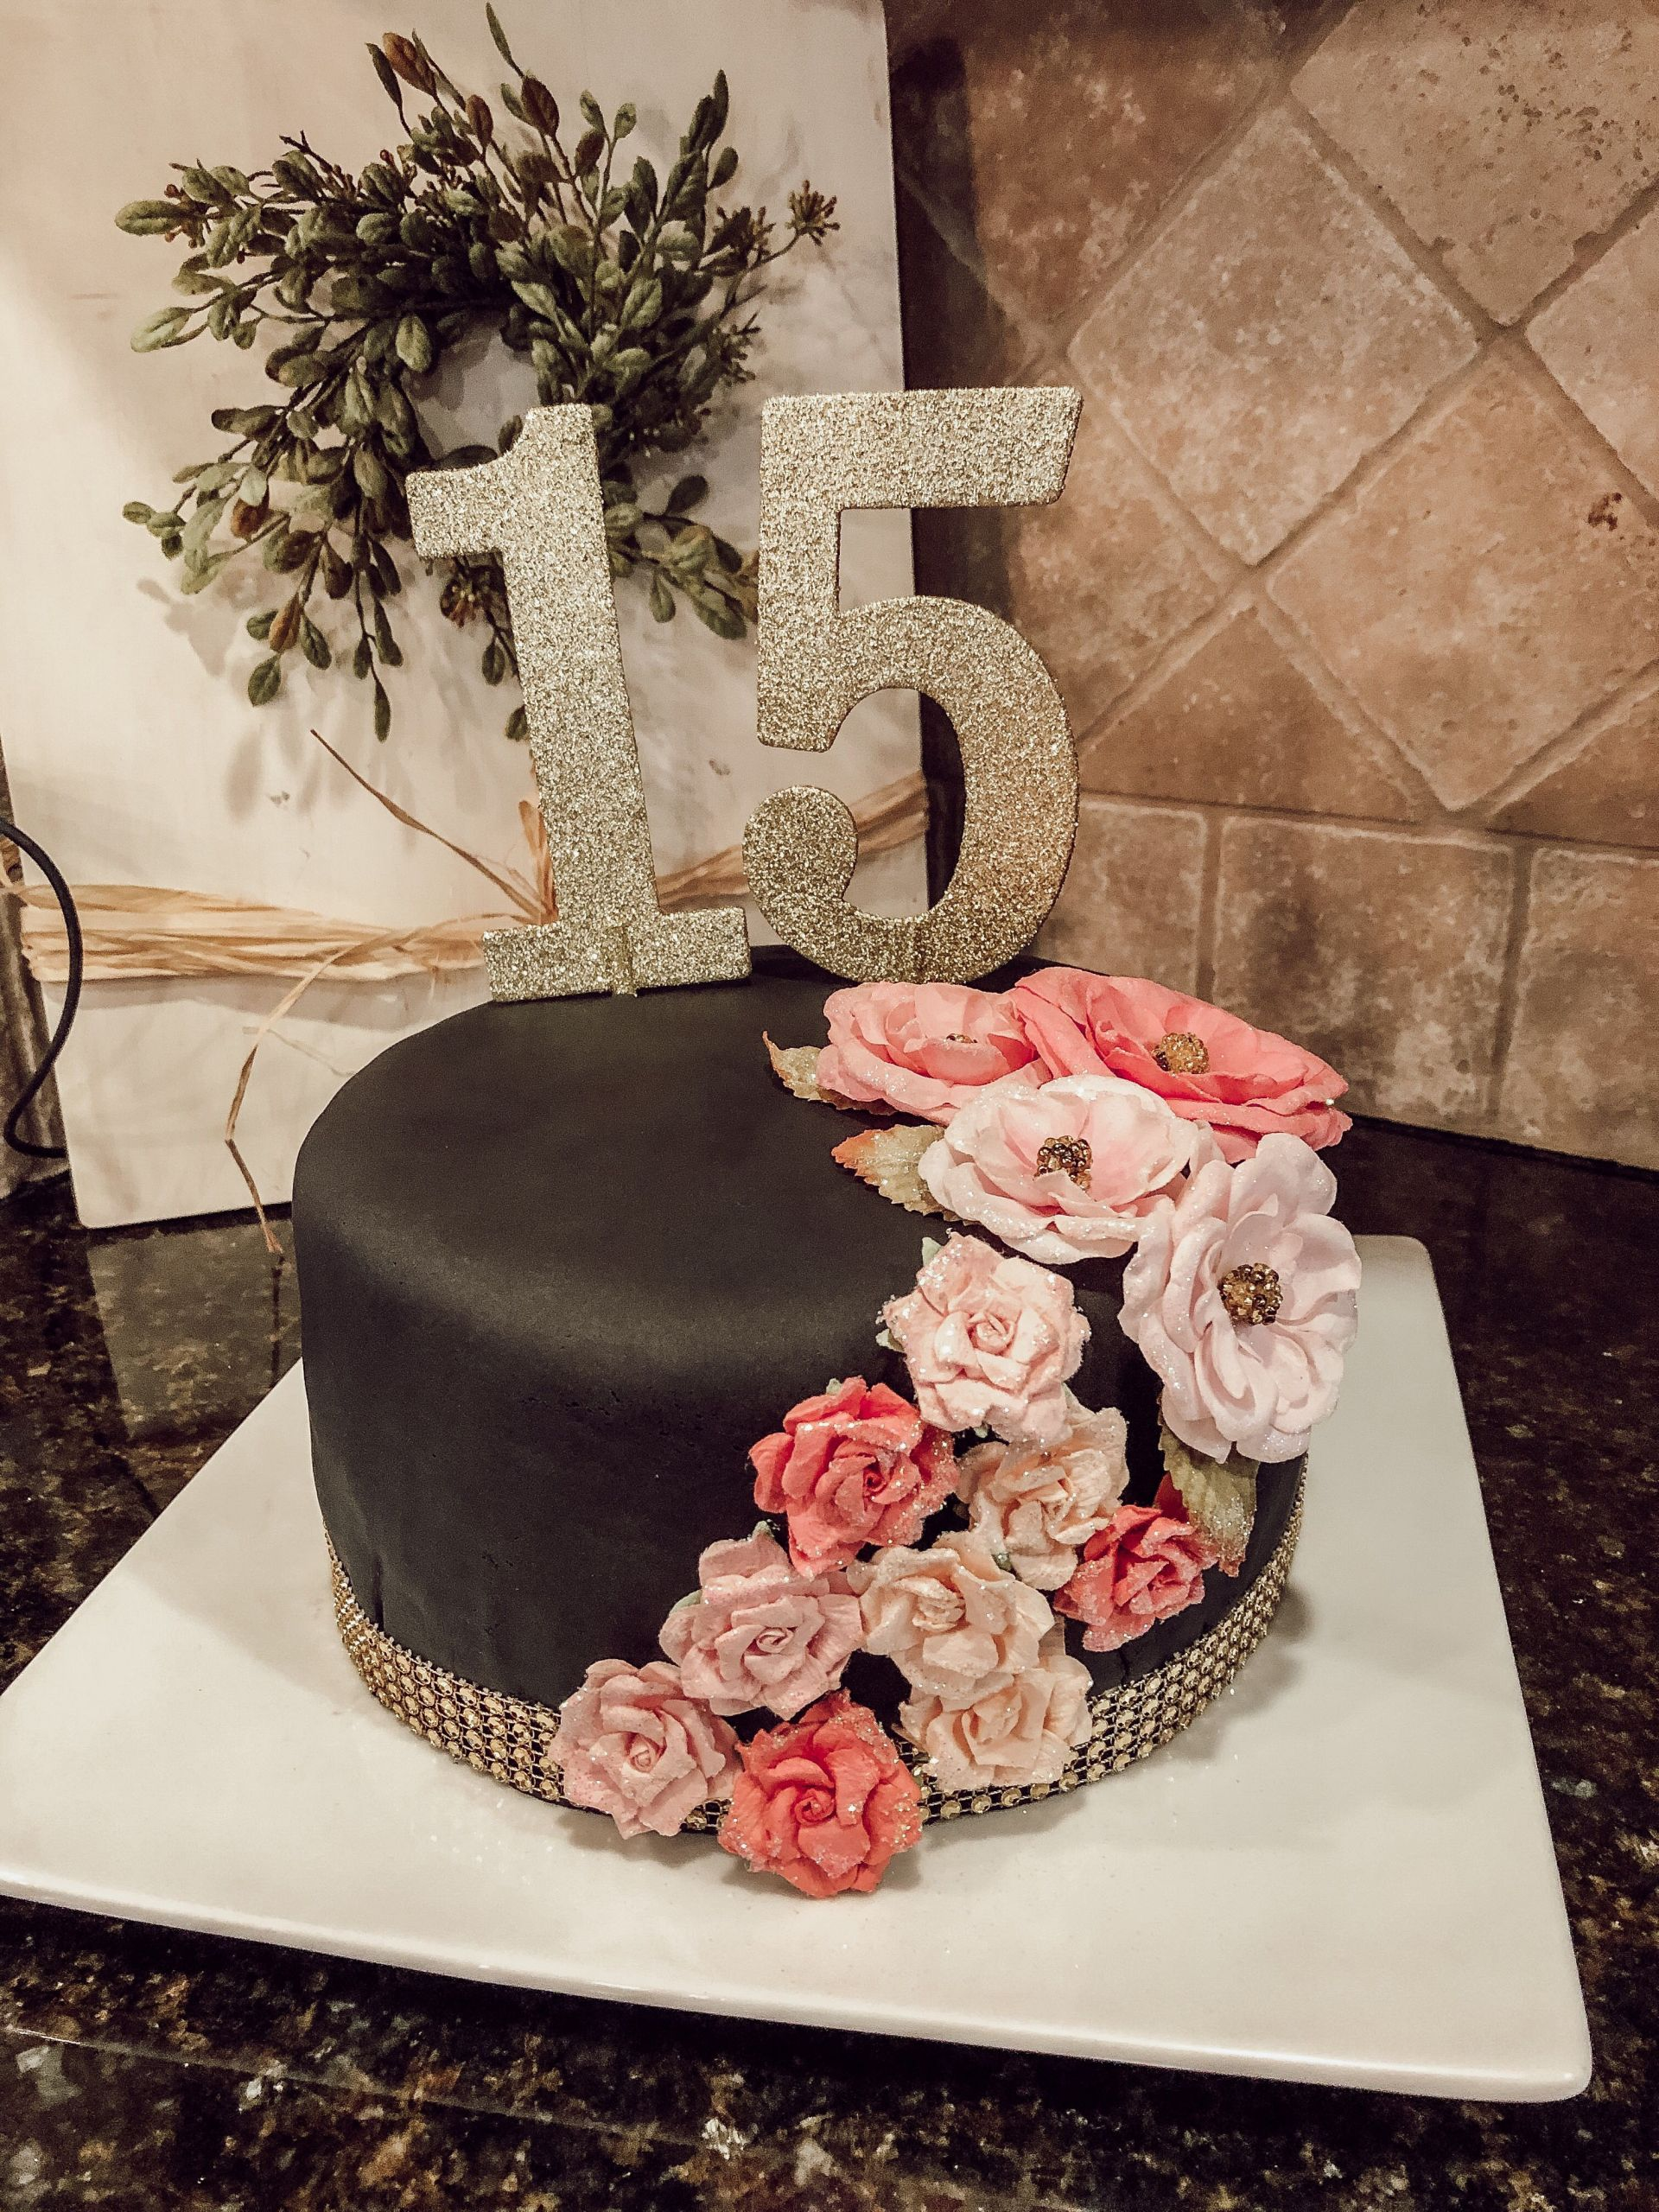 Gift Ideas For 15 Year Old Girls  15 year old girl birthday cake With images